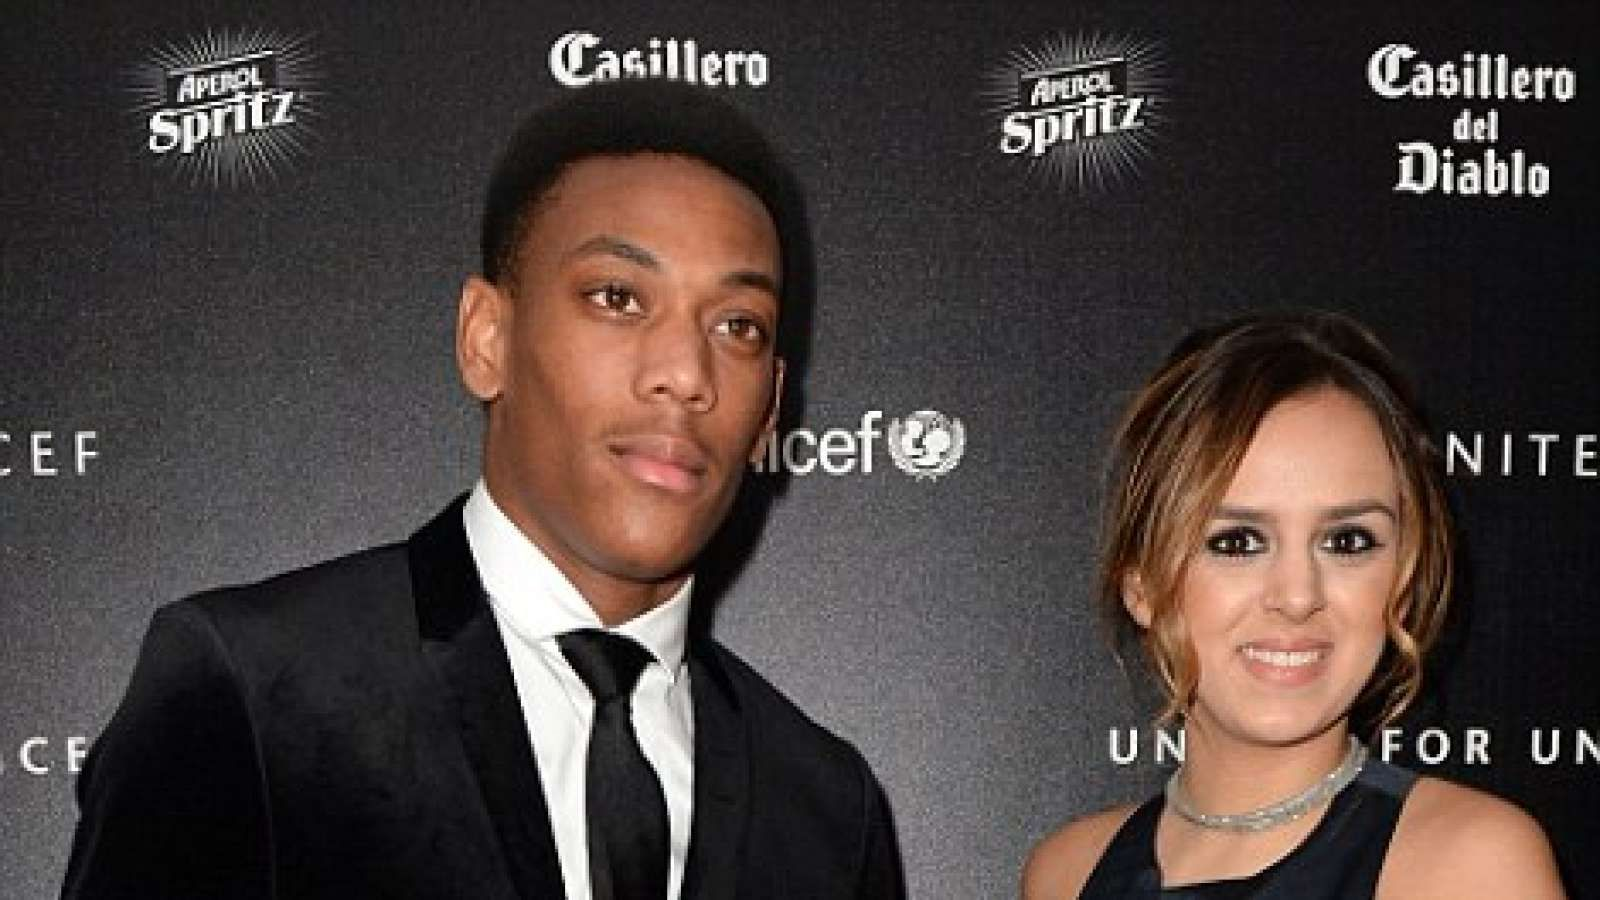 Anthony Martial: Form of Manchester United forward affected by divorce drama